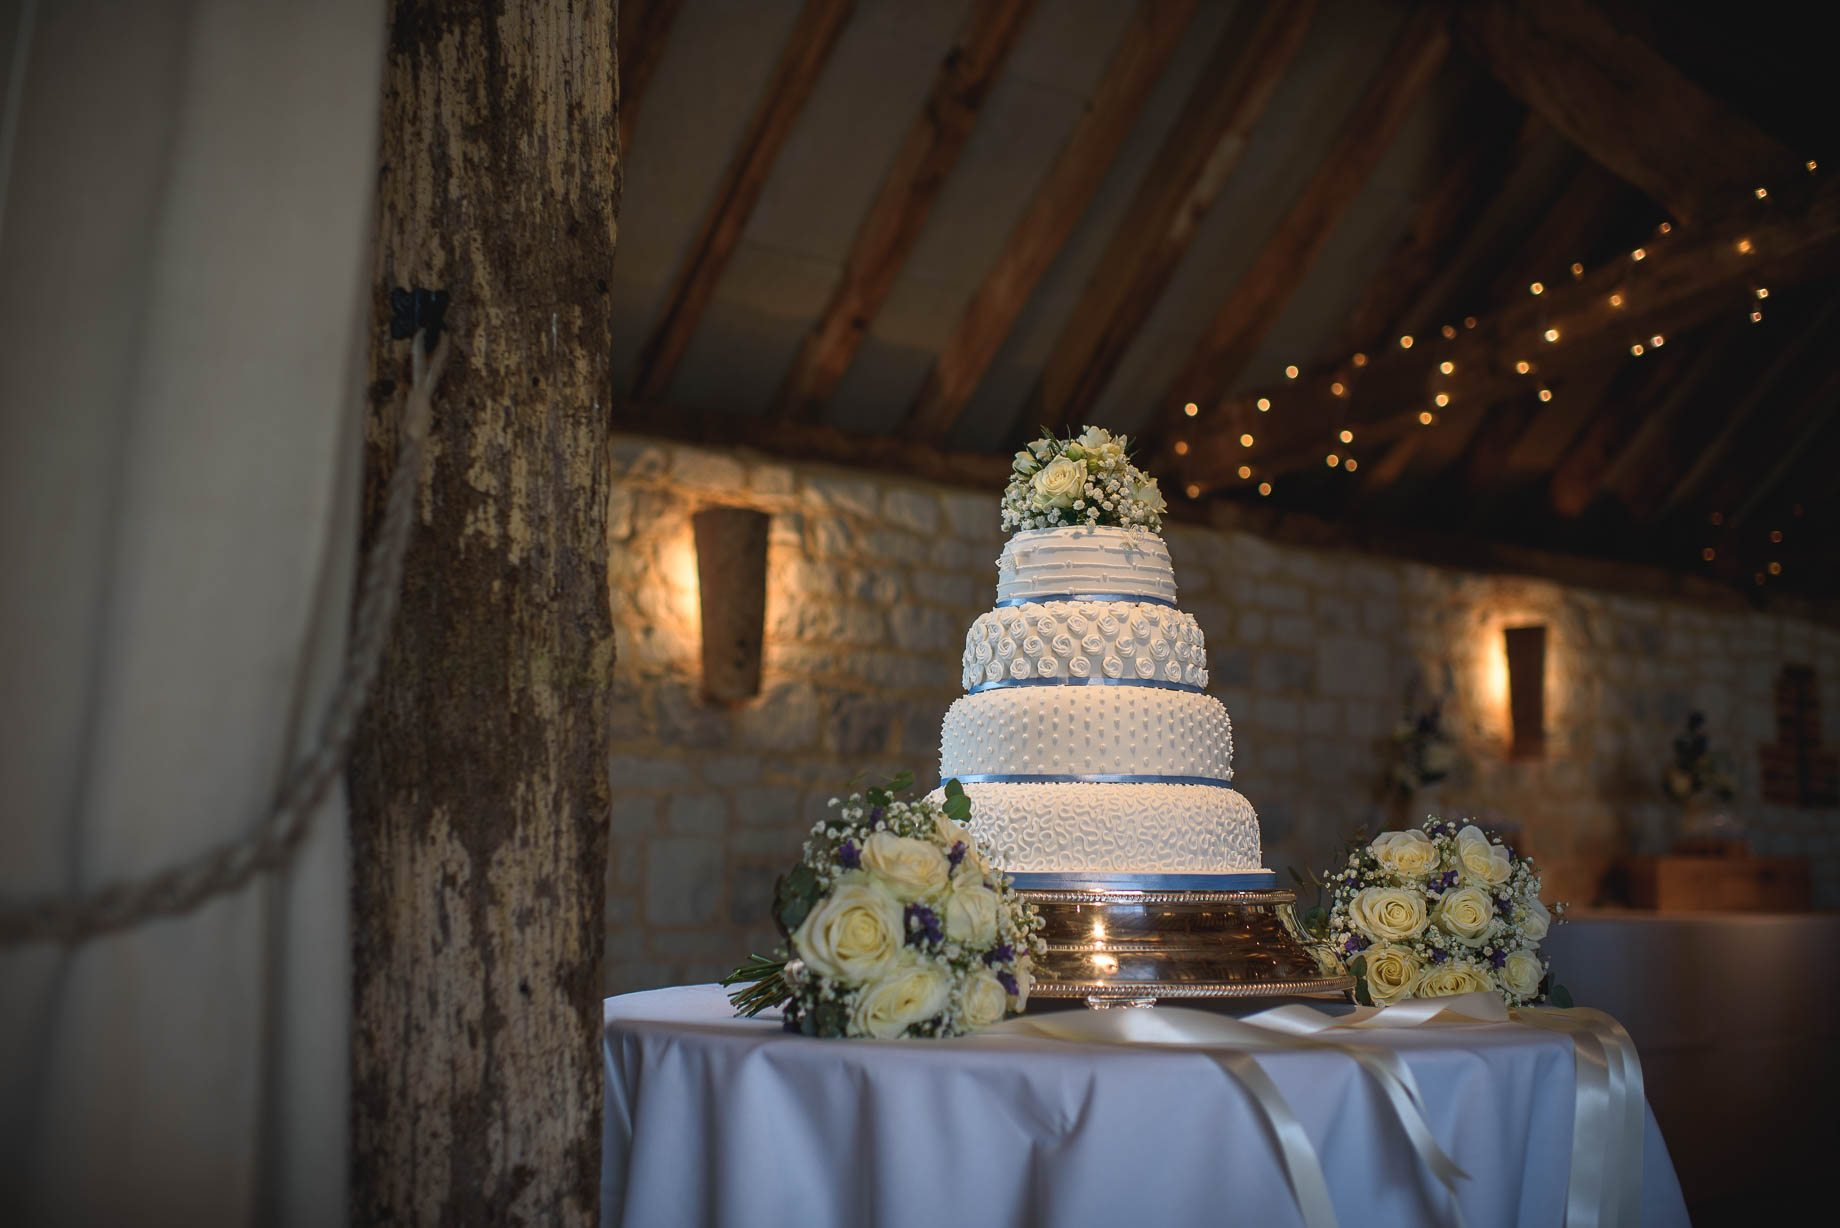 Bury Court Barn wedding photography by Guy Collier - Heather and Pat (114 of 170)